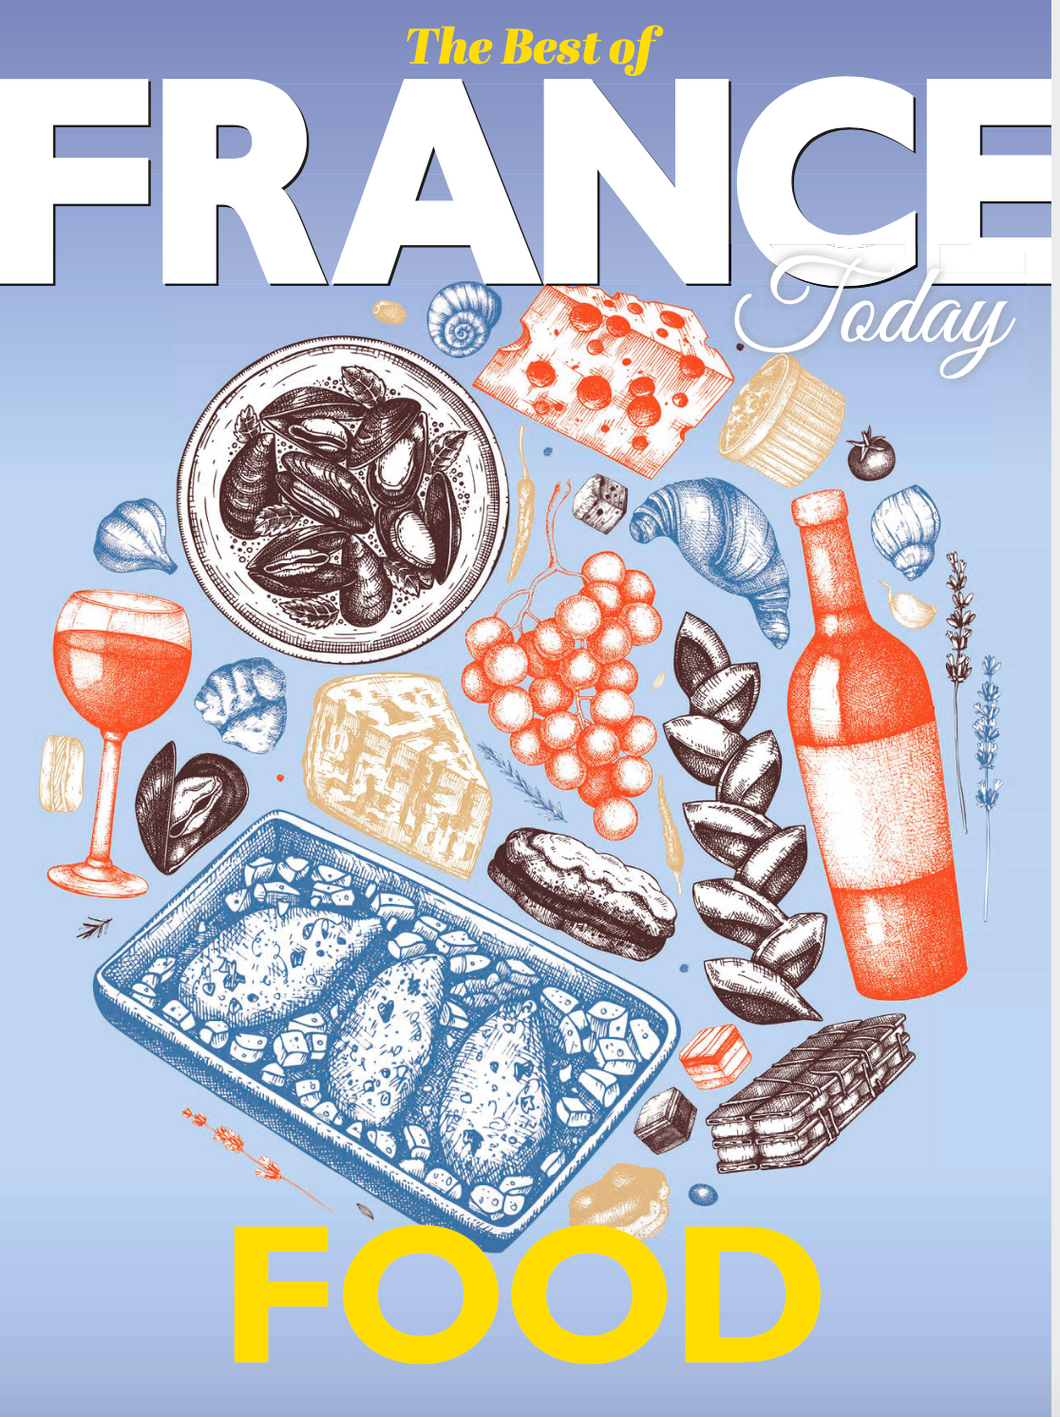 The Best of France Today: Food